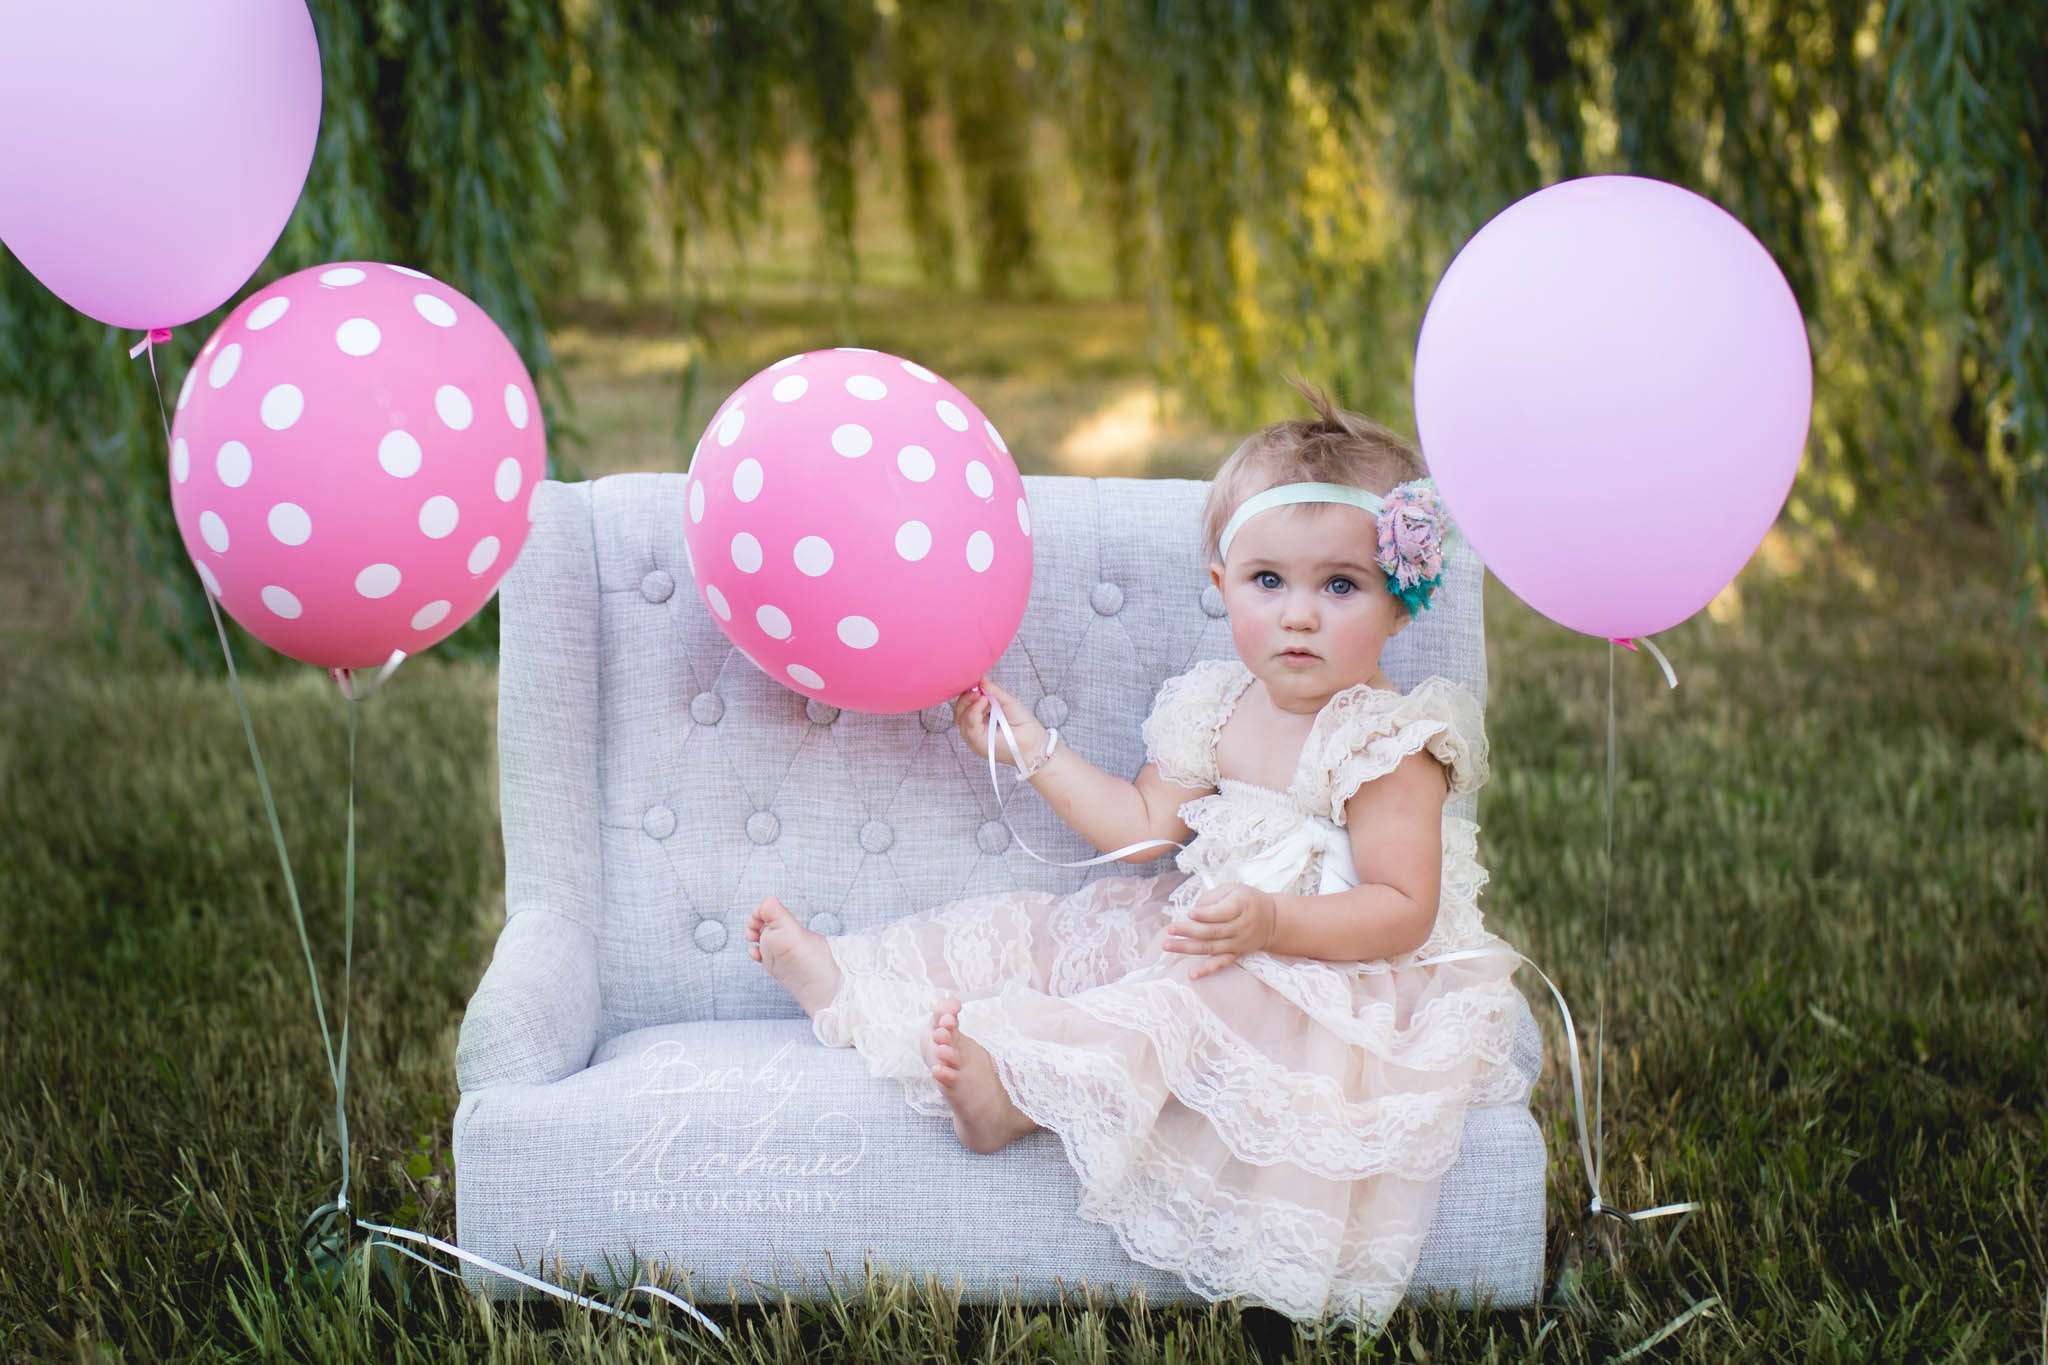 One year old girl with pink balloons in Fort Collins Colorado